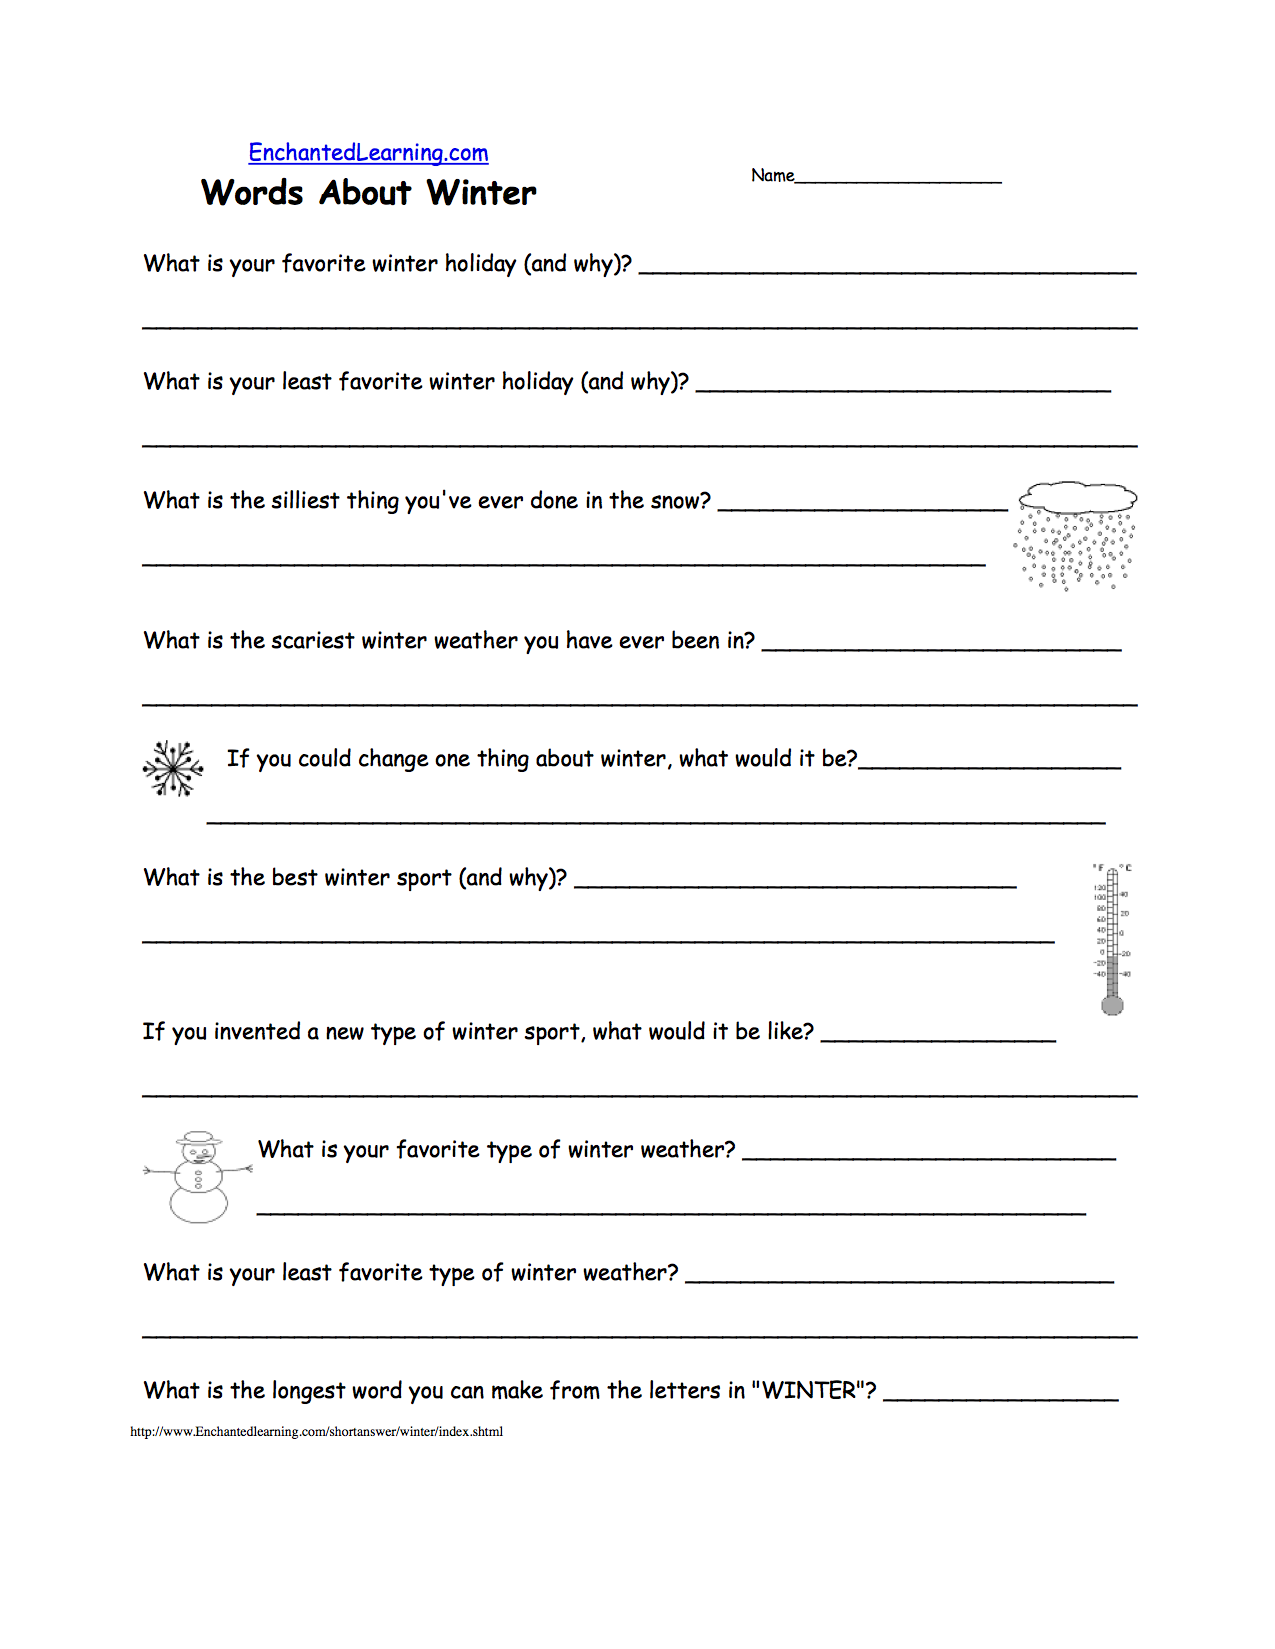 worksheet Short I Worksheet short answer quizzes printable enchantedlearning com weather